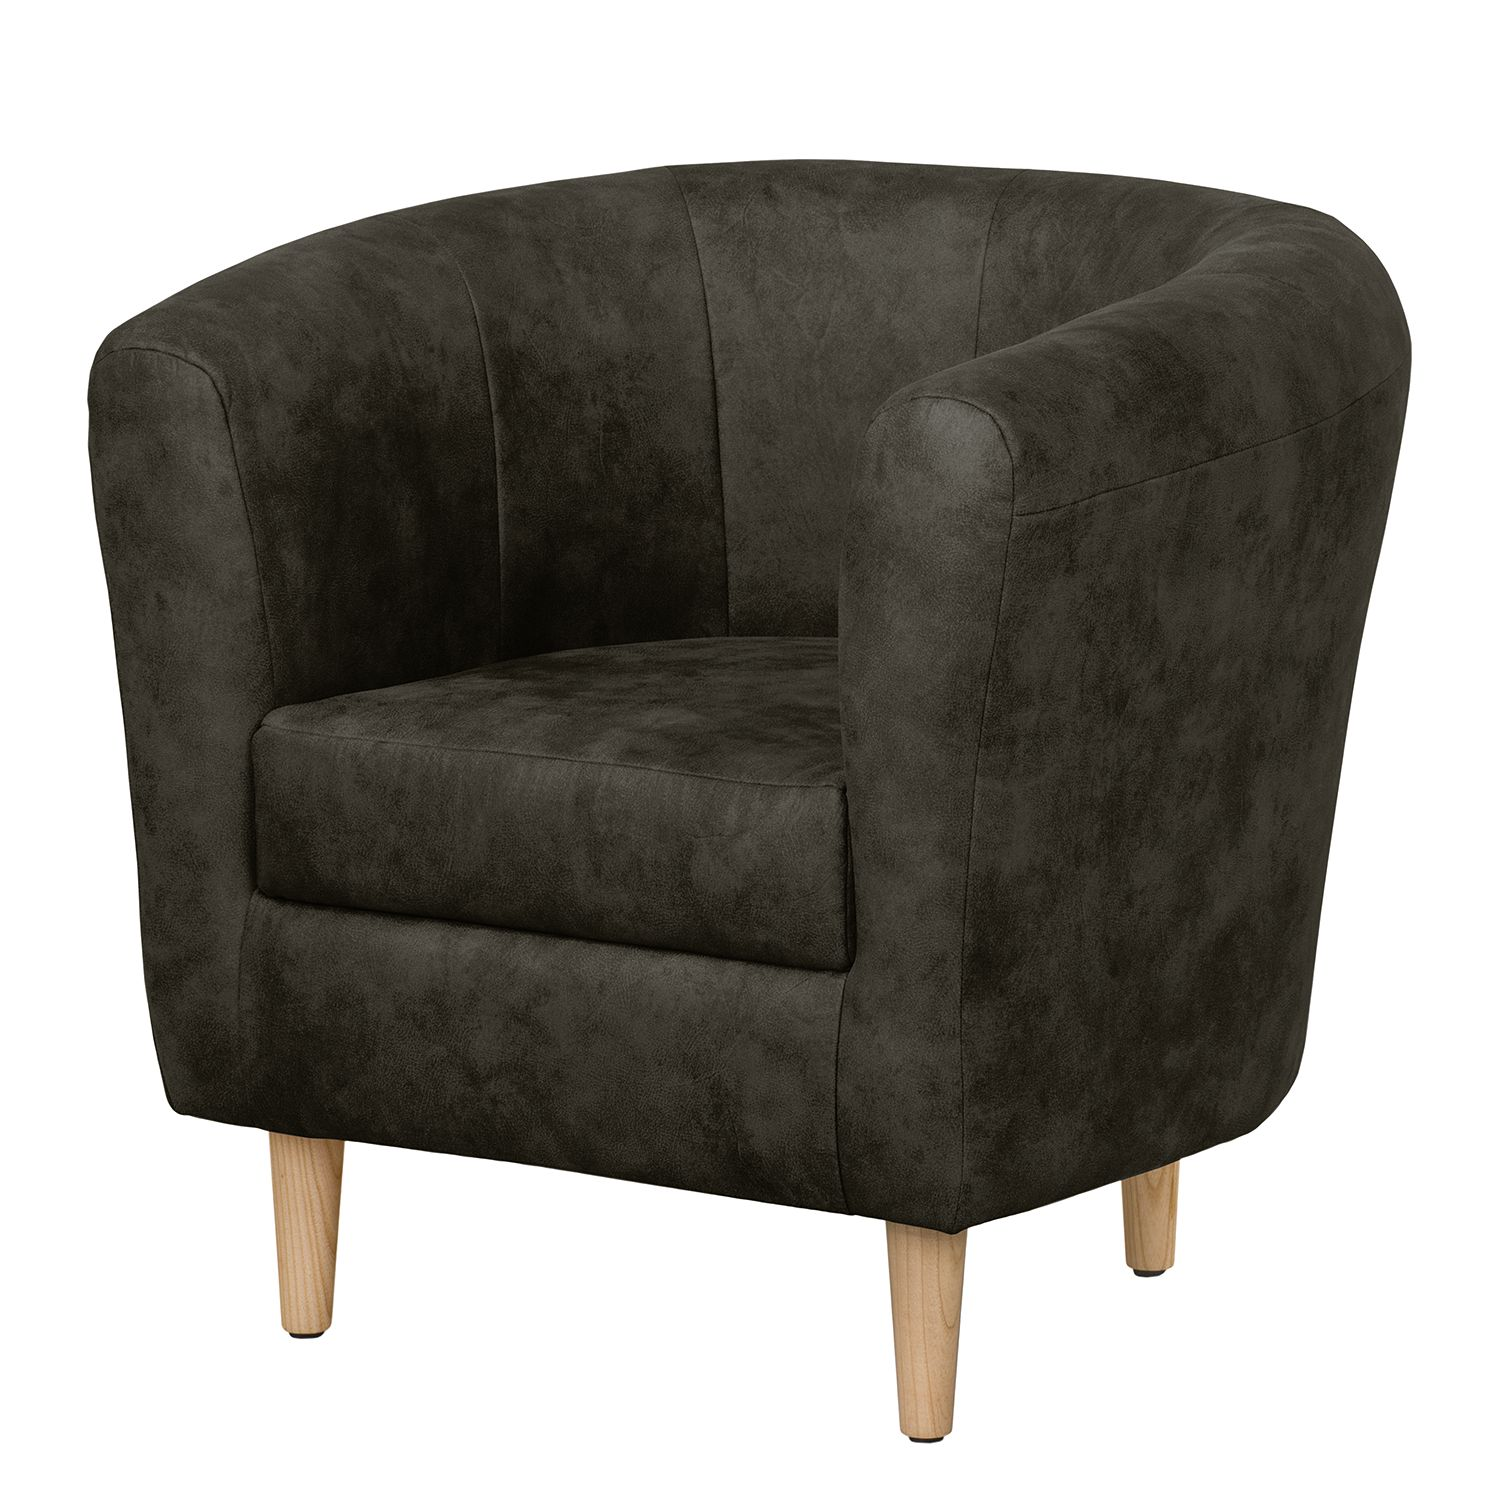 Fauteuil Casales - Aspect cuir antique - Anthracite, ars manufacti